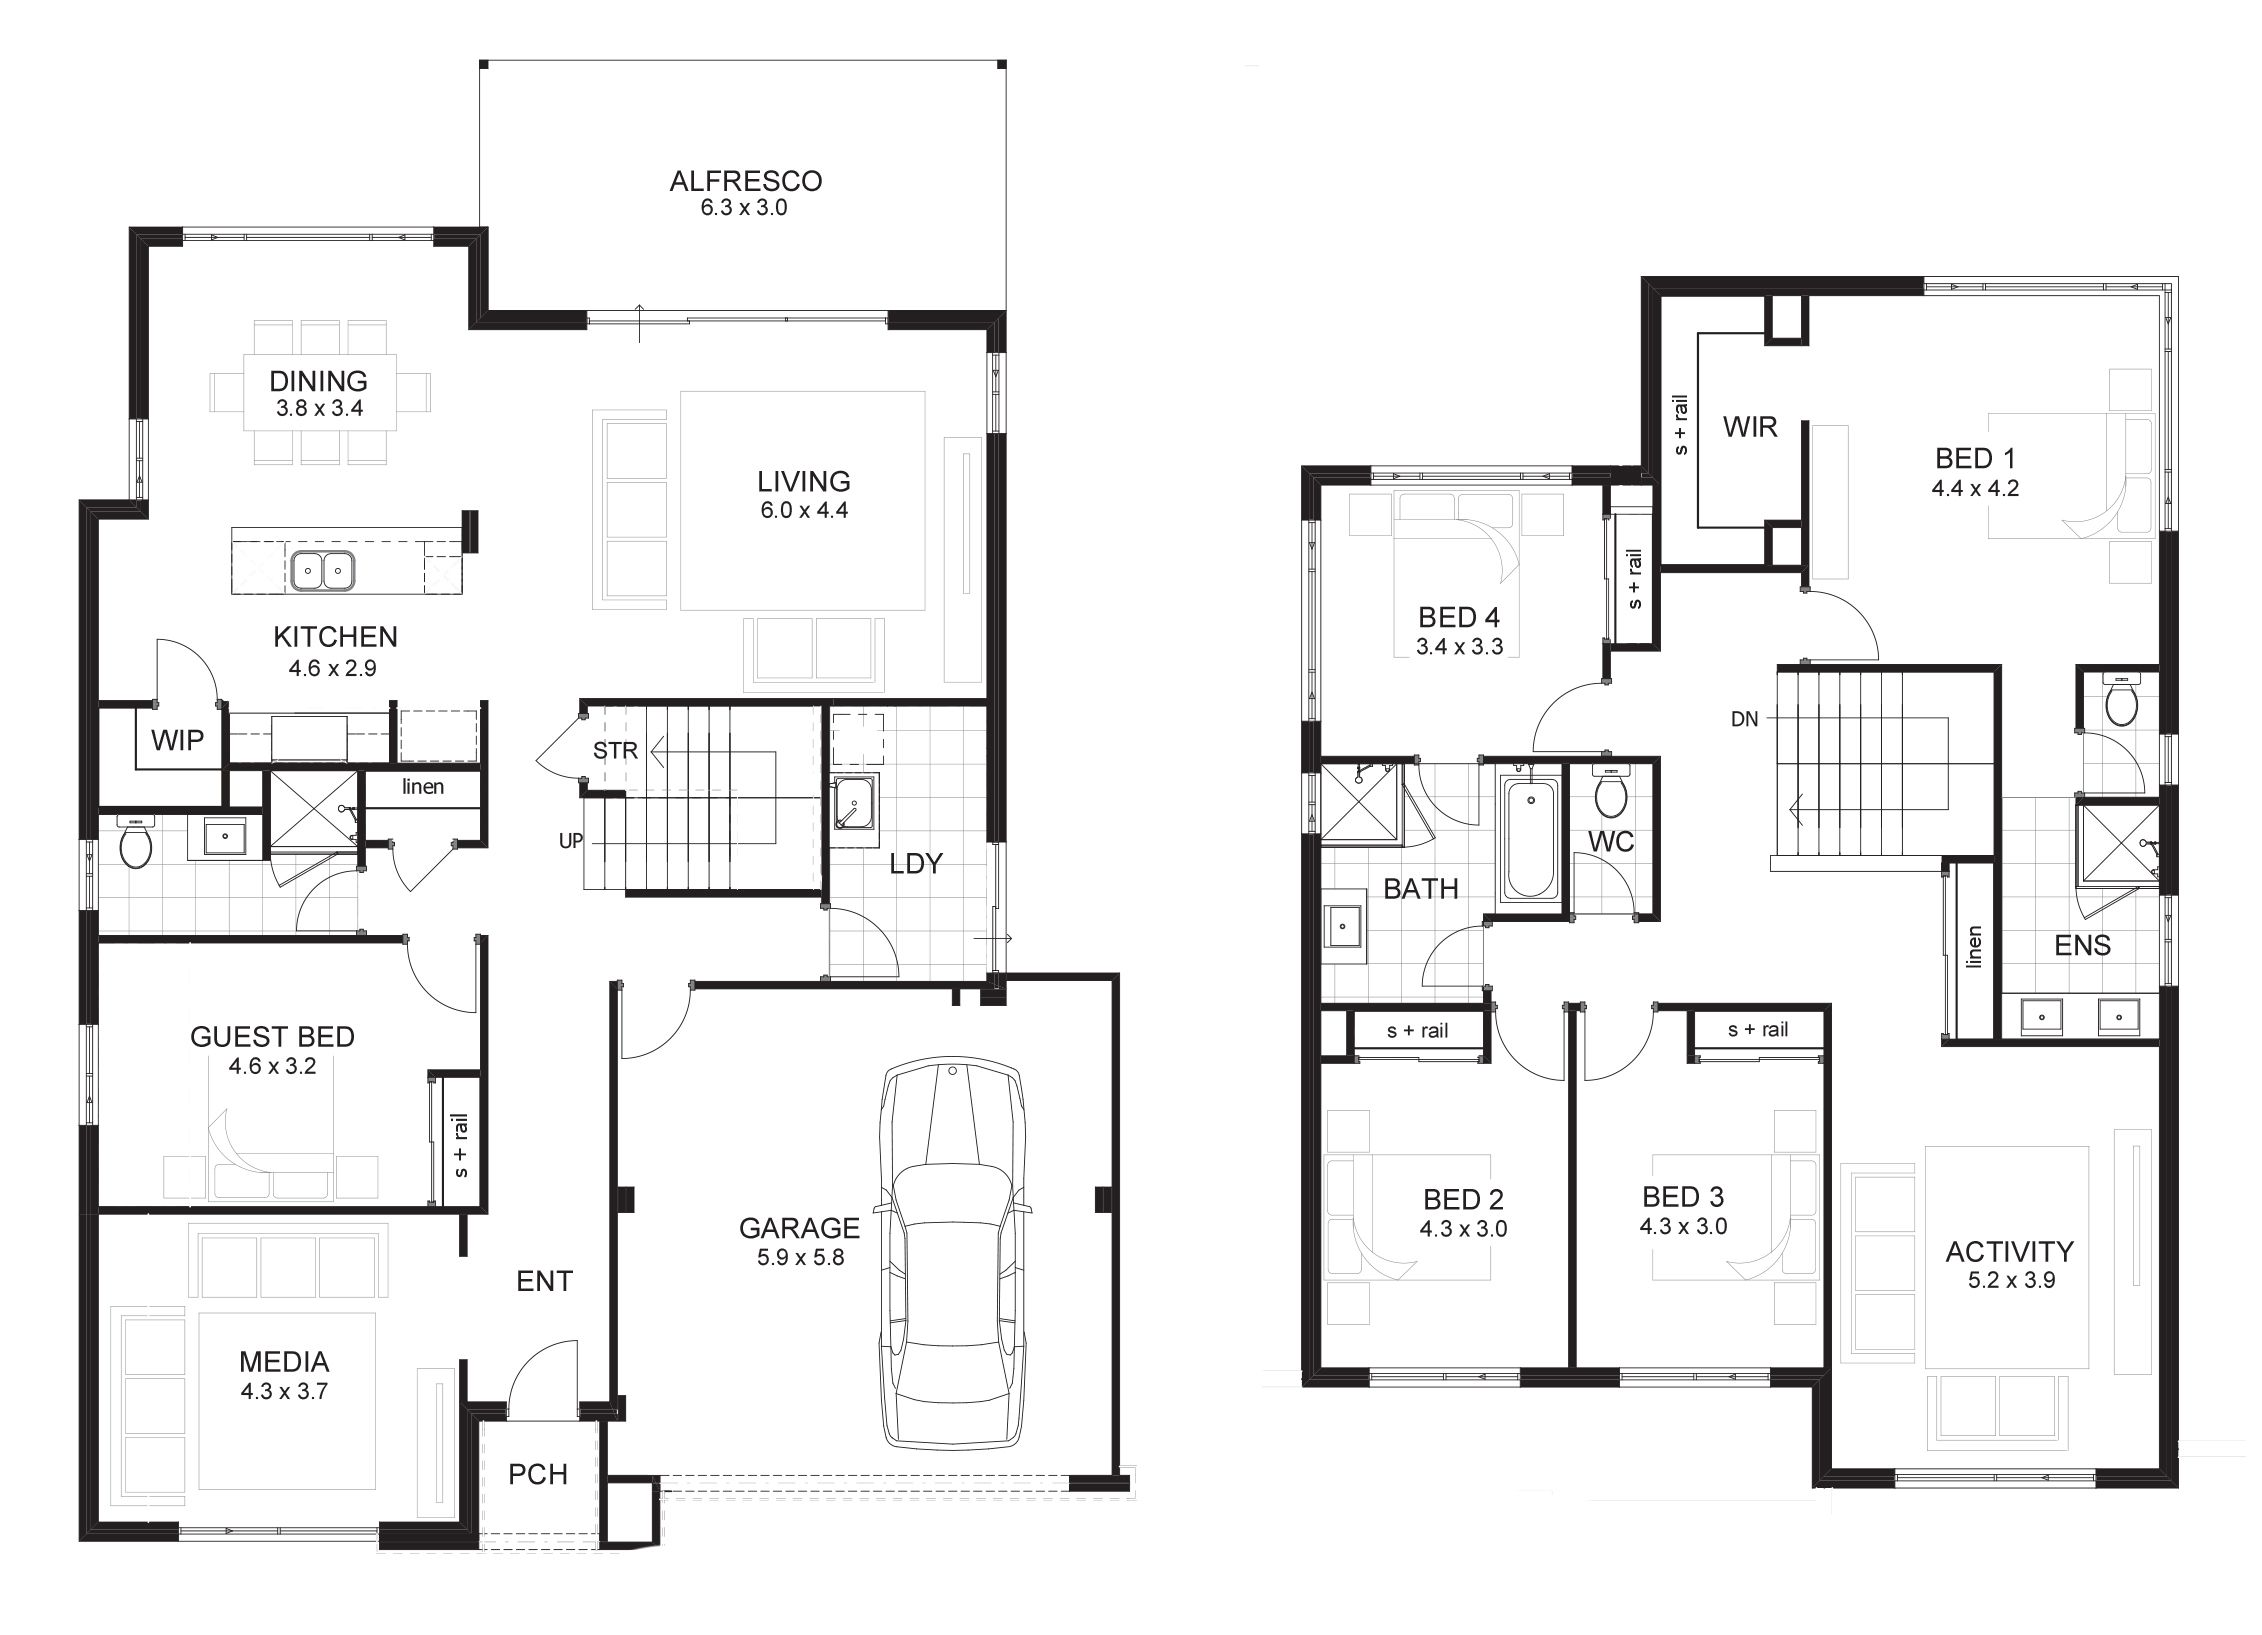 6 Bedroom House Plans Perth